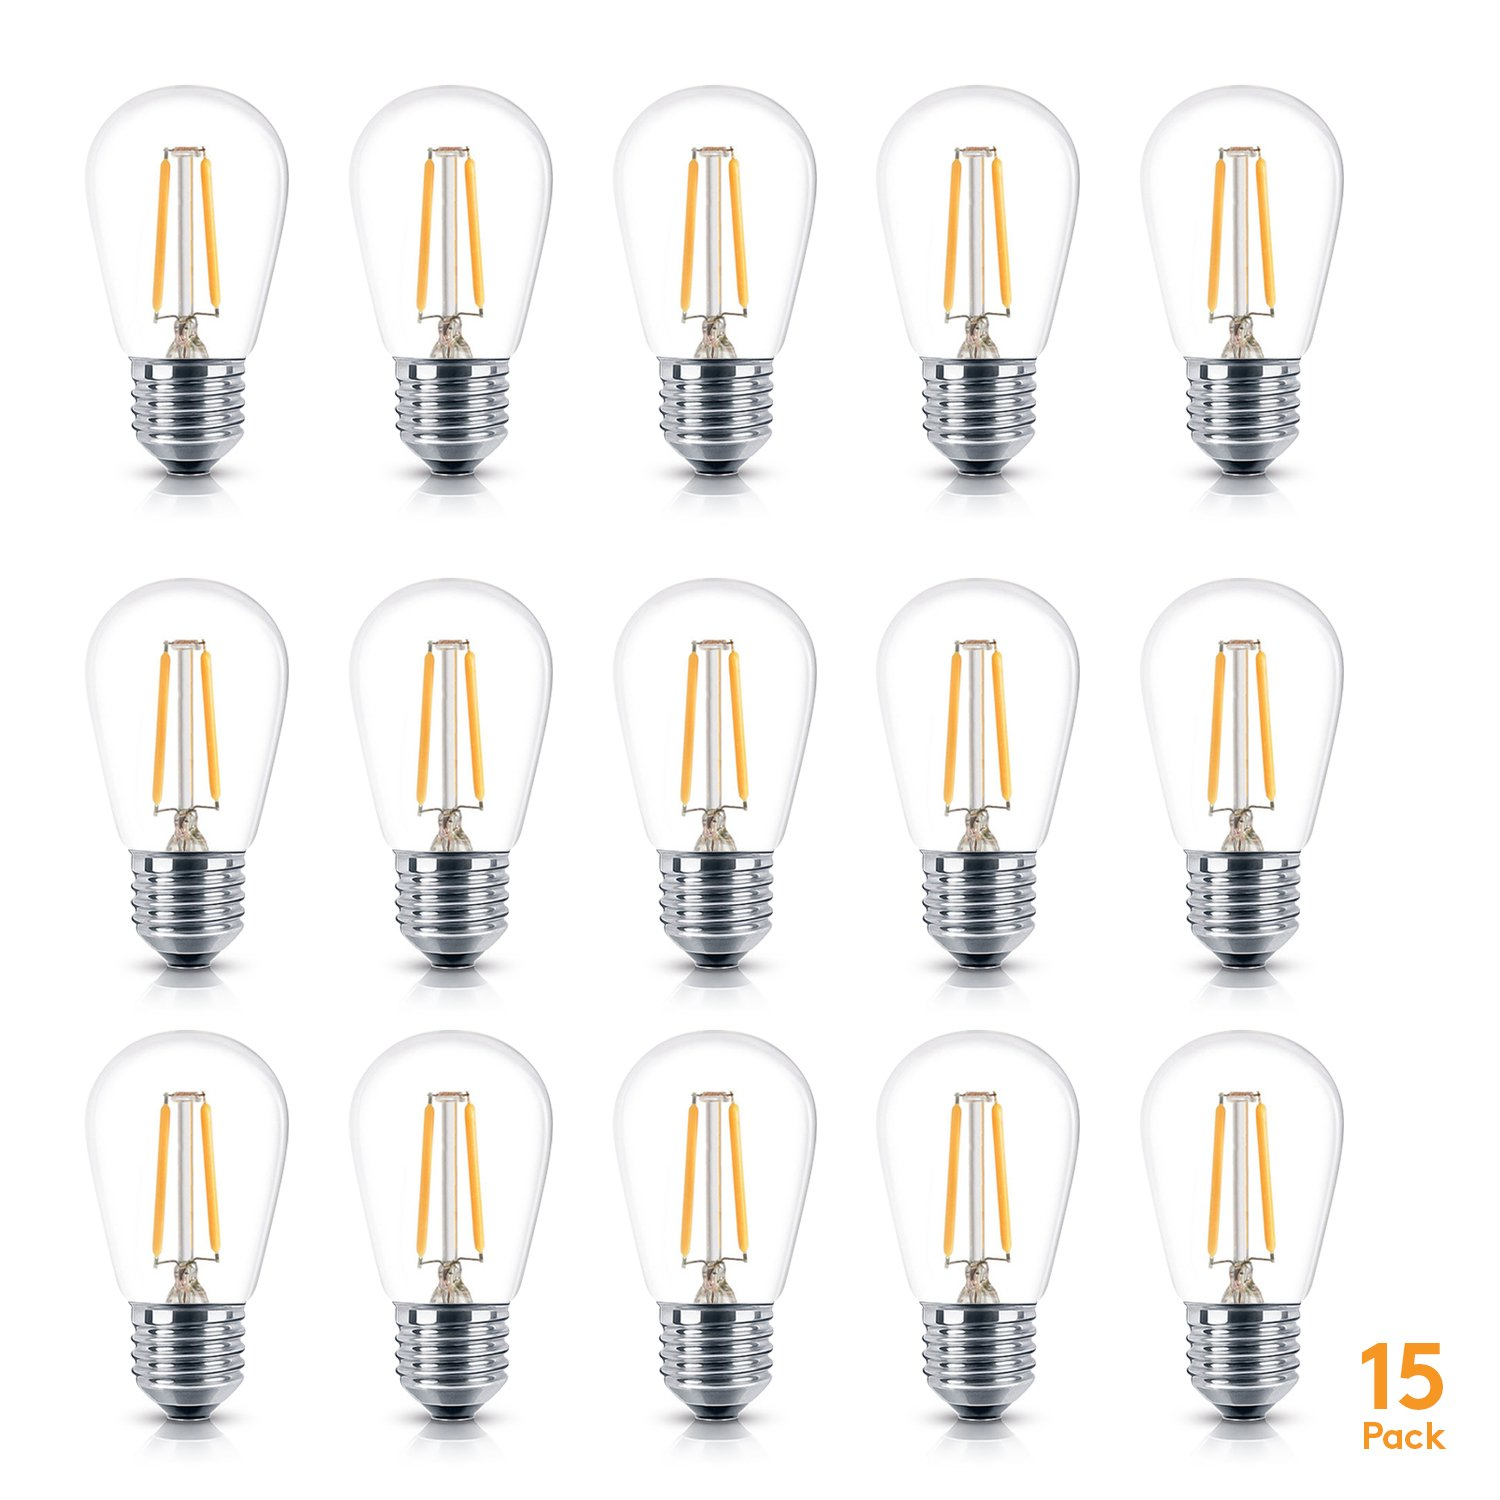 Brightech - Ambience PRO LED S14 1 Watt Bulb - 1 Watt - Use to Replace High-Heat, High-Cost Incandescent Bulbs in Outdoor String Lights - Edison-Inspired Exposed Filaments Design- 15 Pack